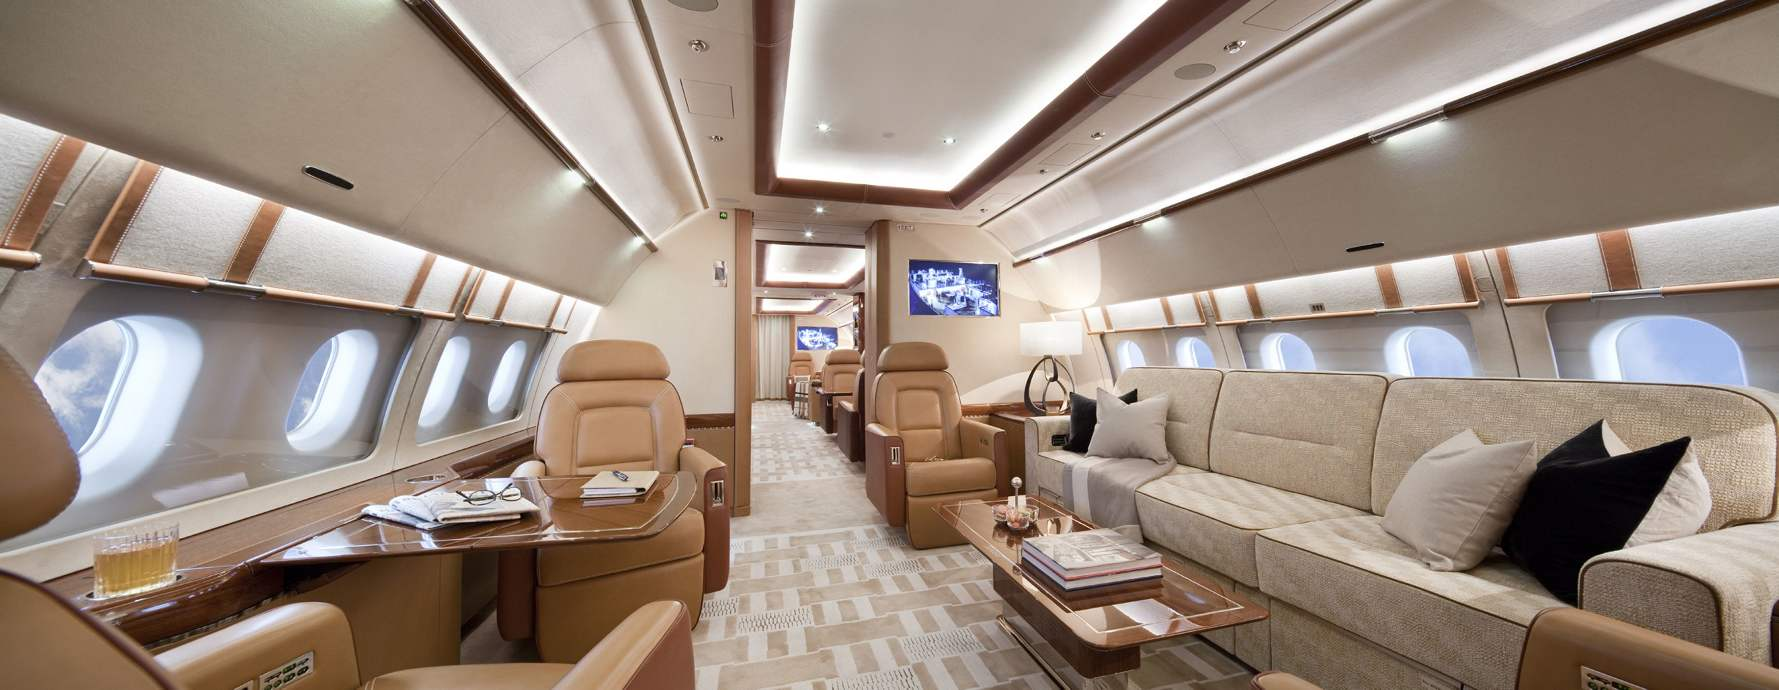 Airbus targets Middle East bizjet market with ACJ